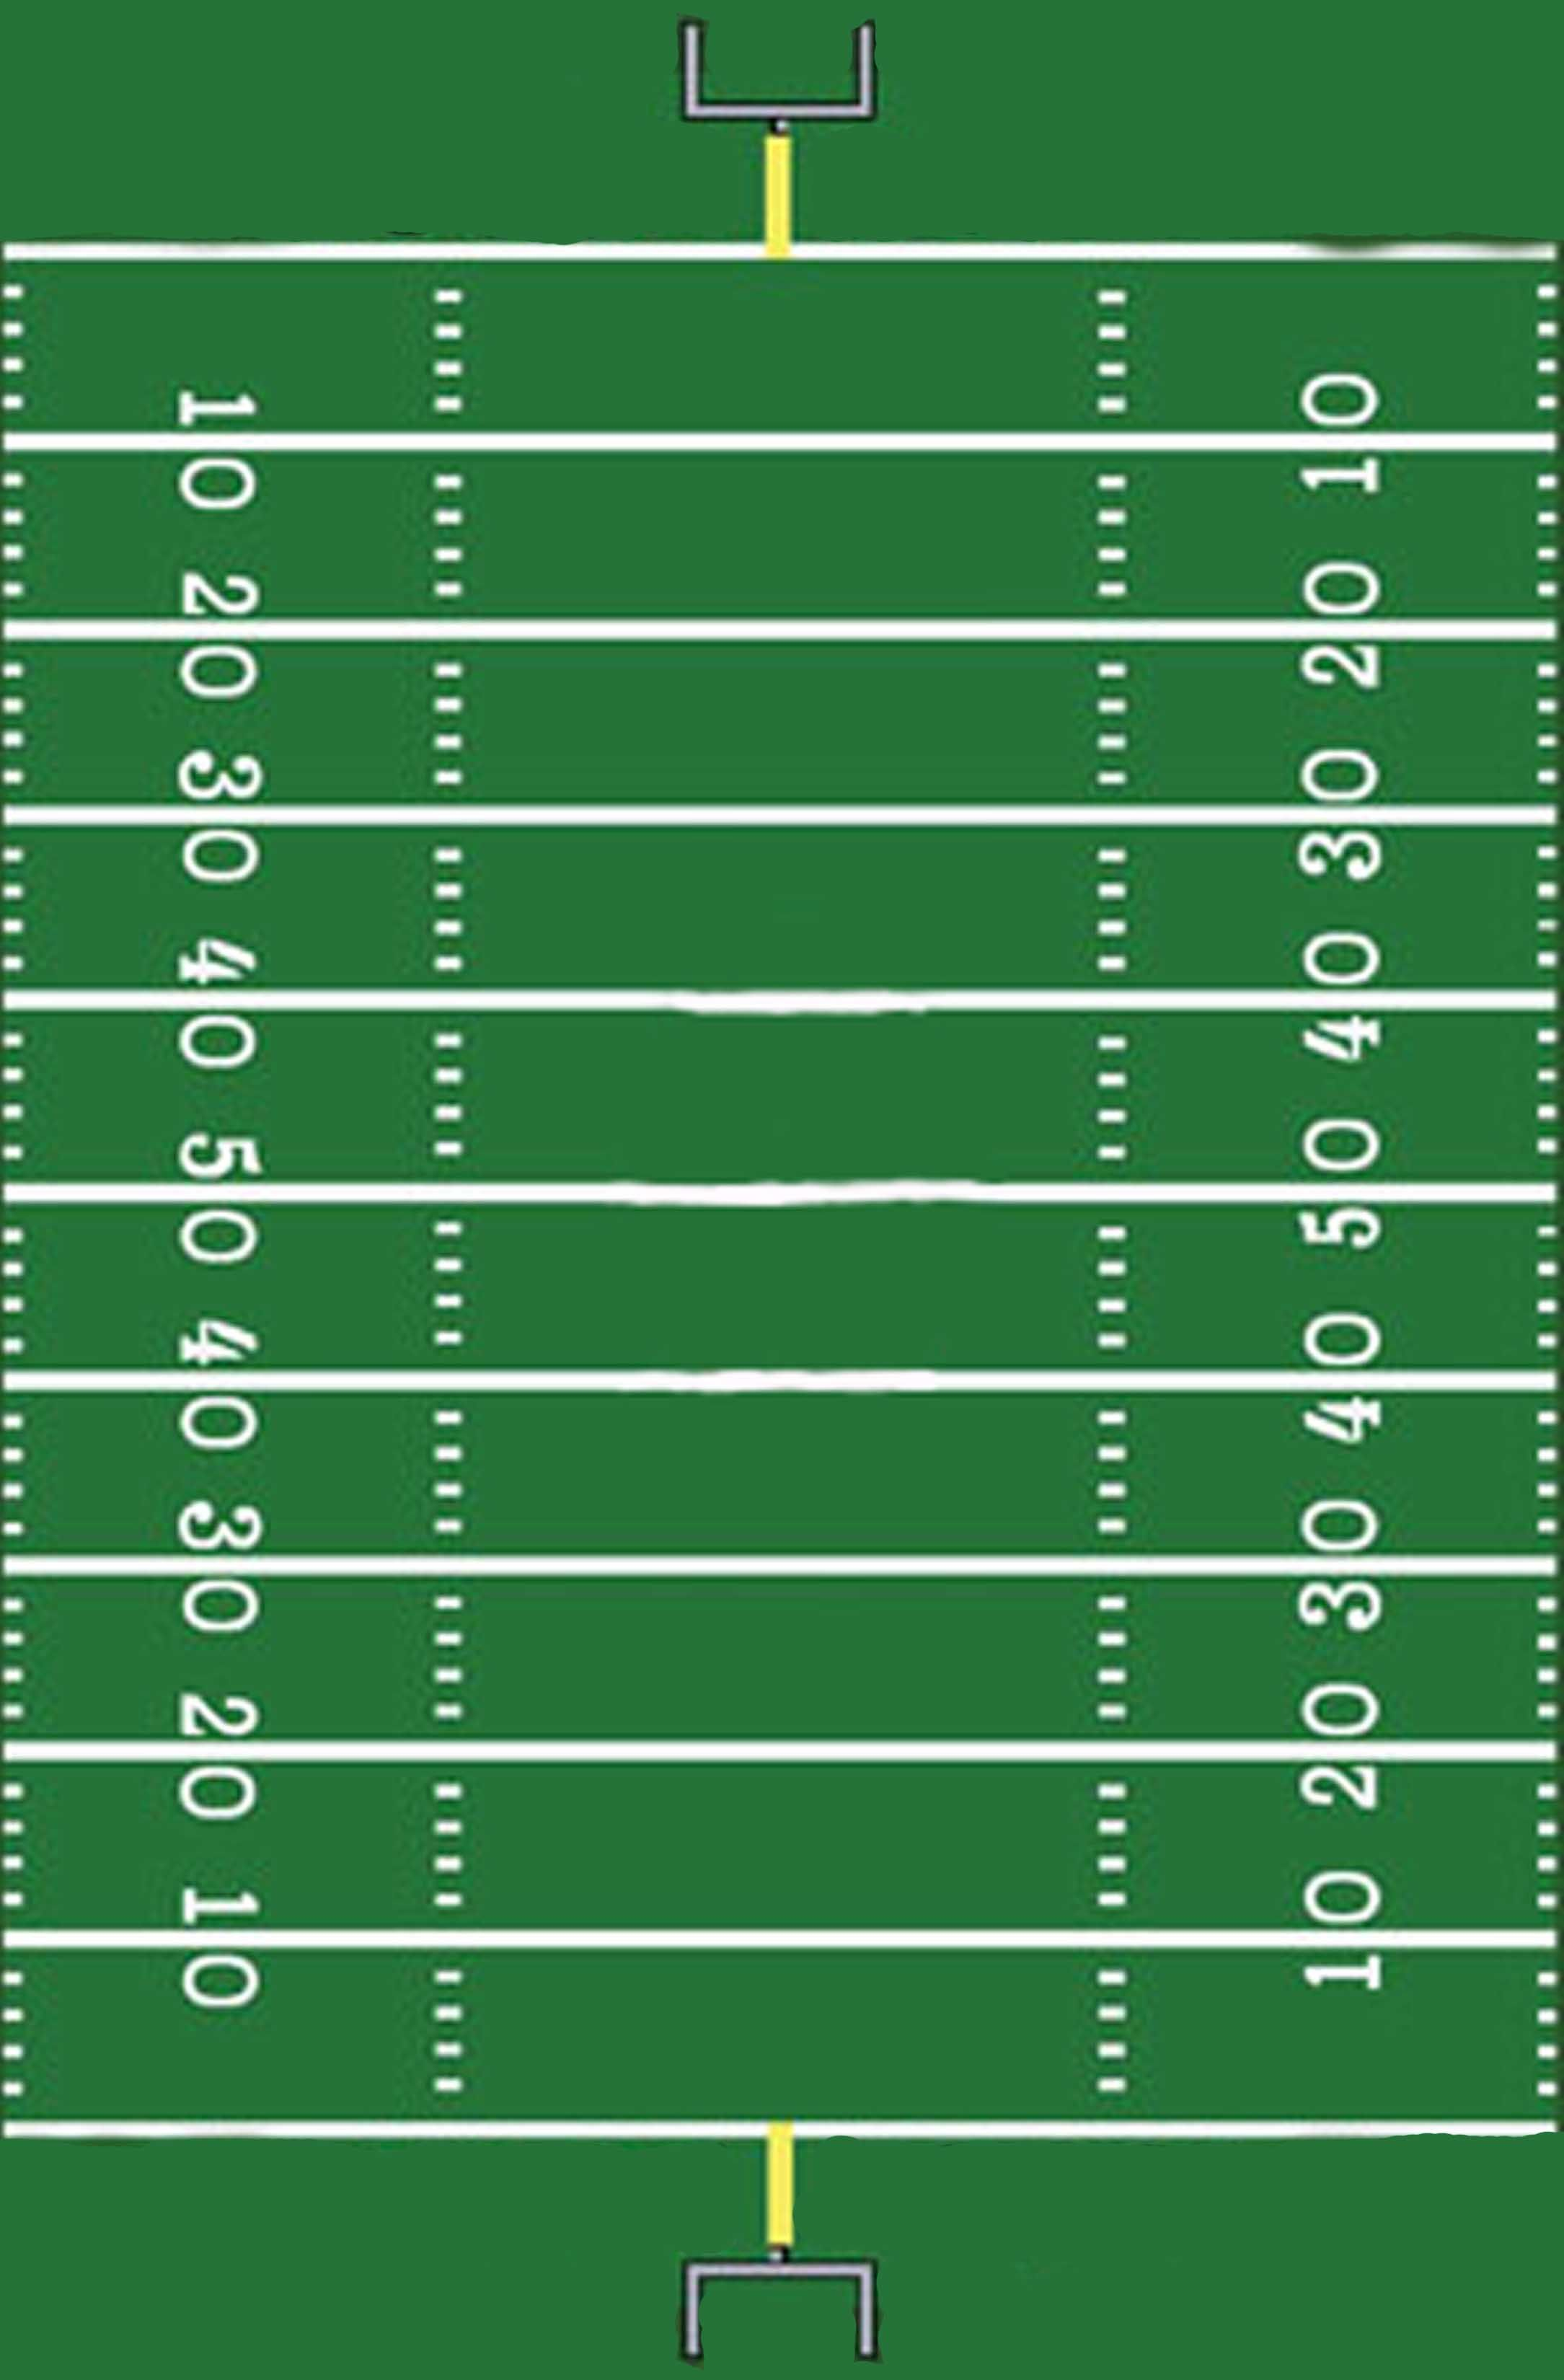 Print Out This Football Field And Let Your Kids Track The